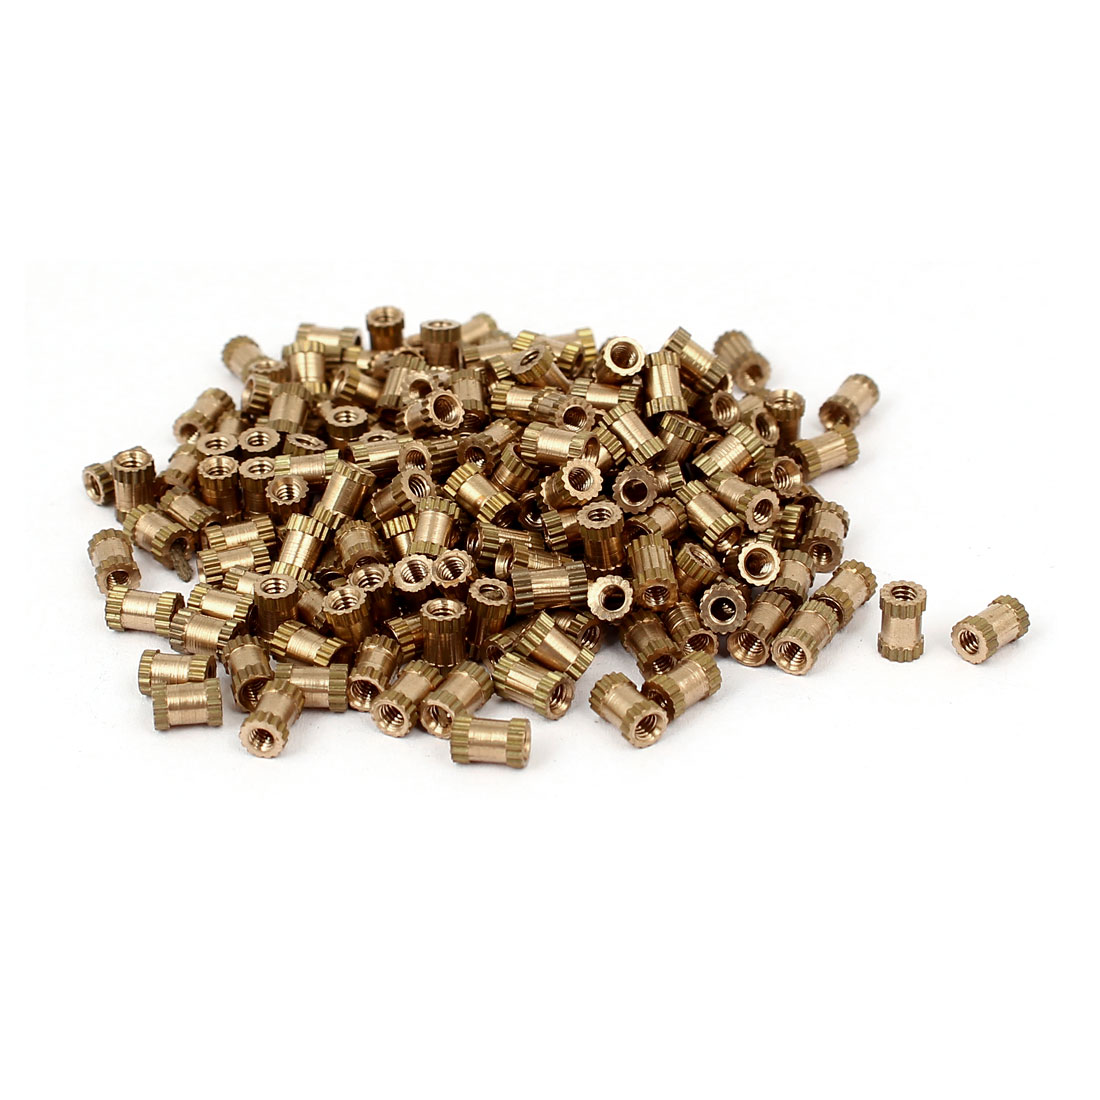 M2 x 5mm 3.2mm OD Brass Injection Molding Threaded Knurled Thumb Nut 200PCS